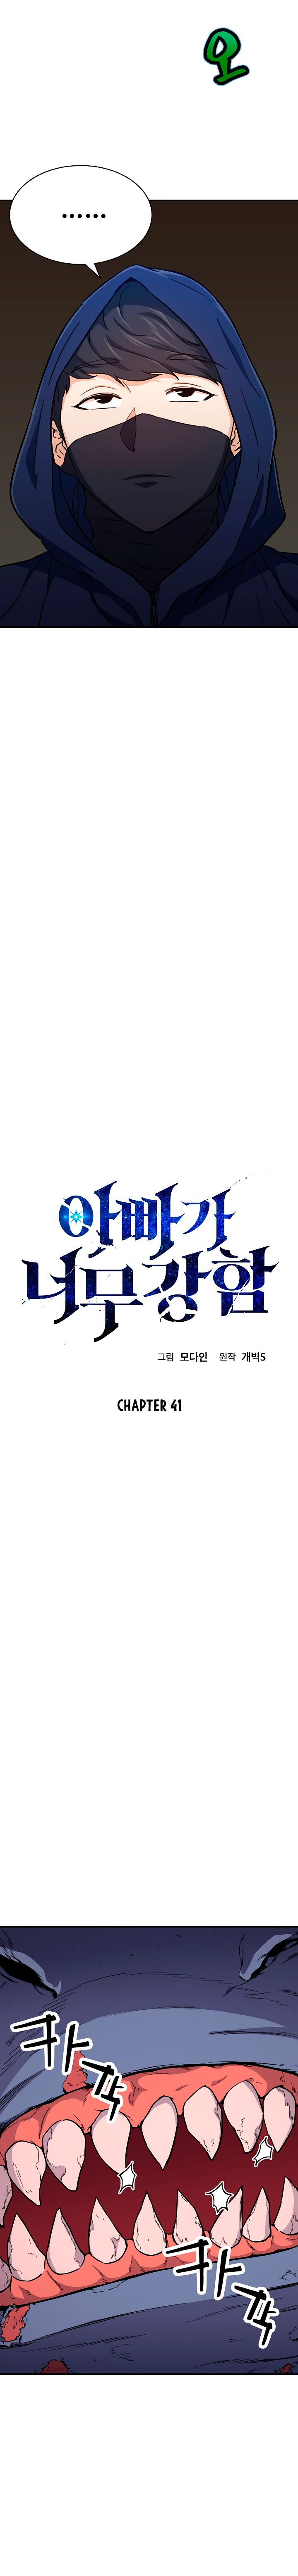 My Dad Is Too Strong - chapter 41-eng-li